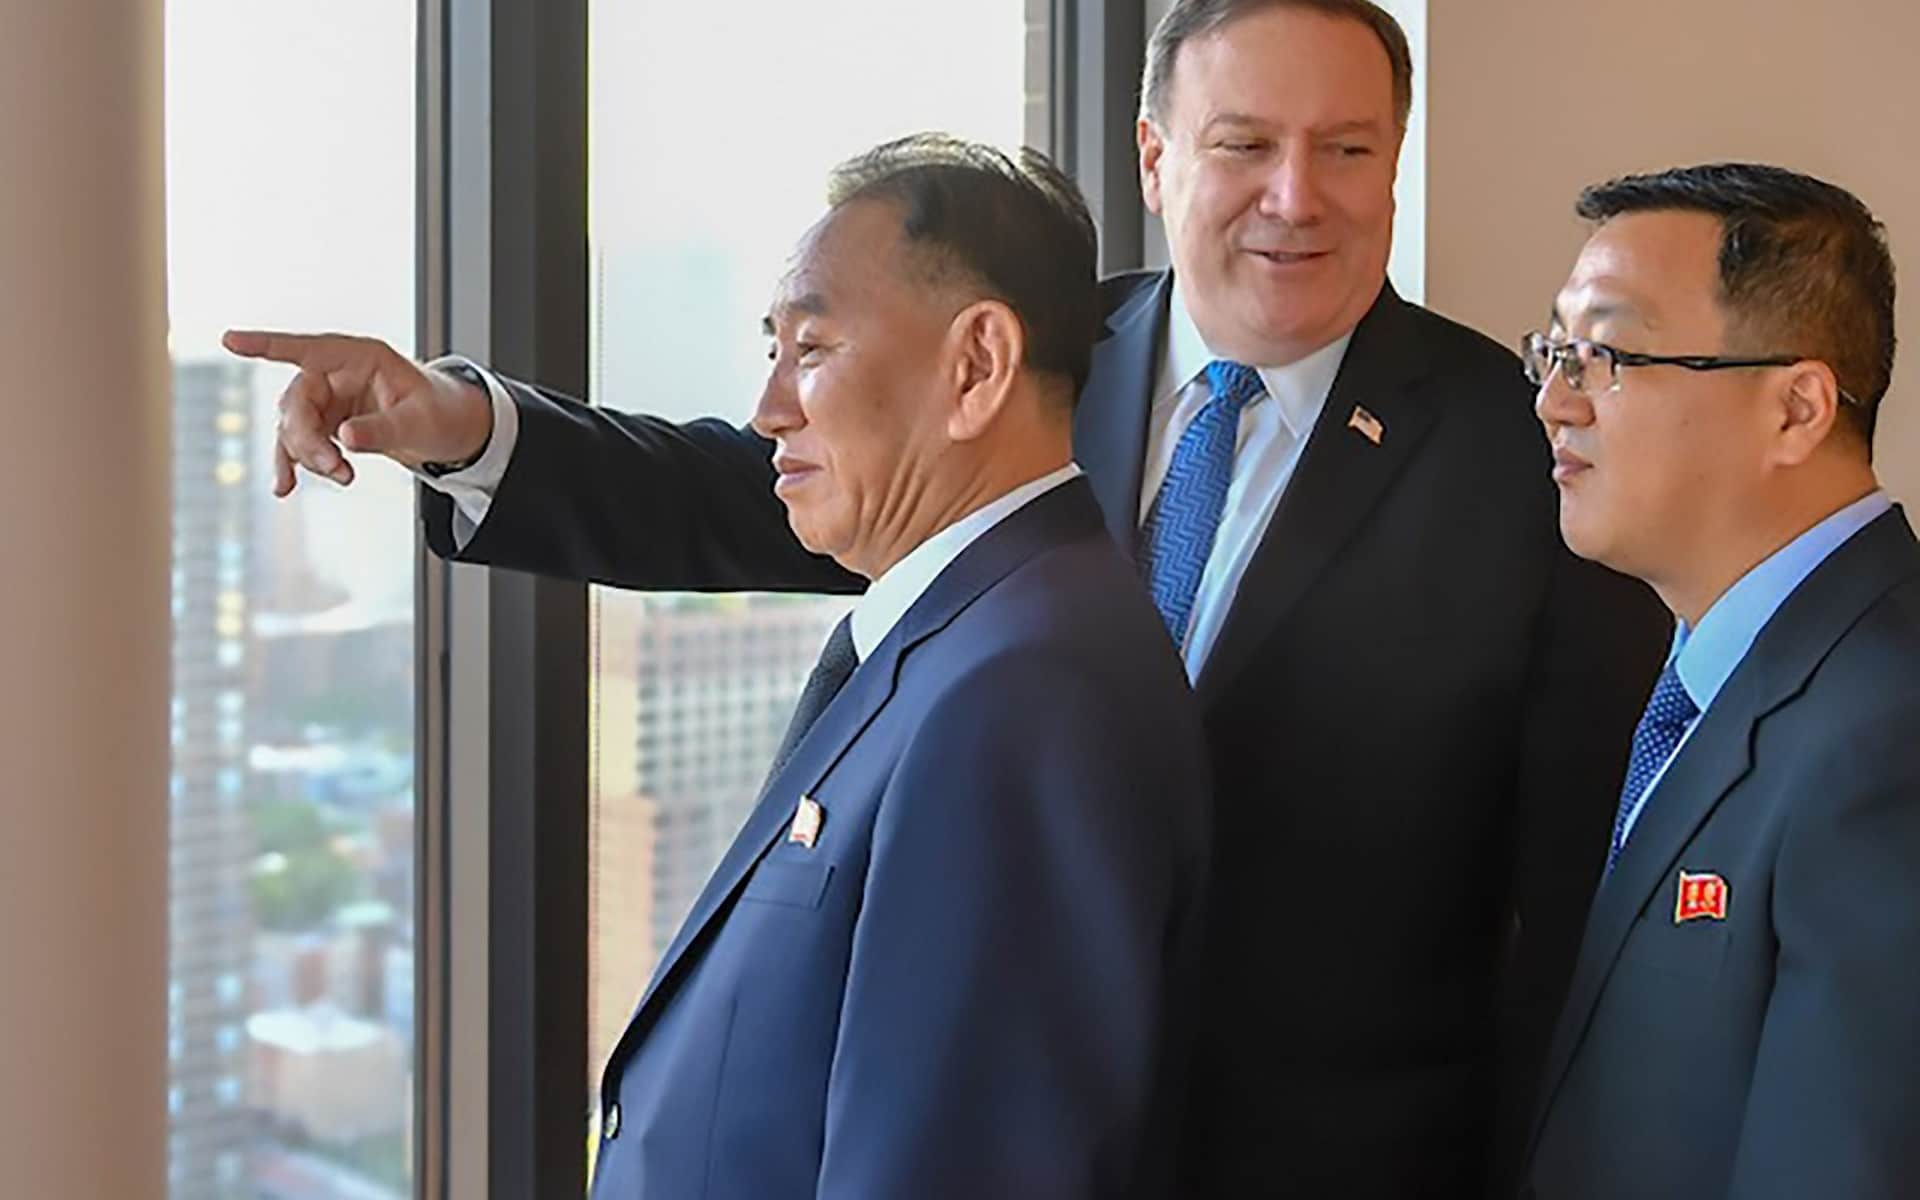 North Korean spymaster Kim Yong-chol meets Mike Pompeo in New York ahead of planned Trump summit